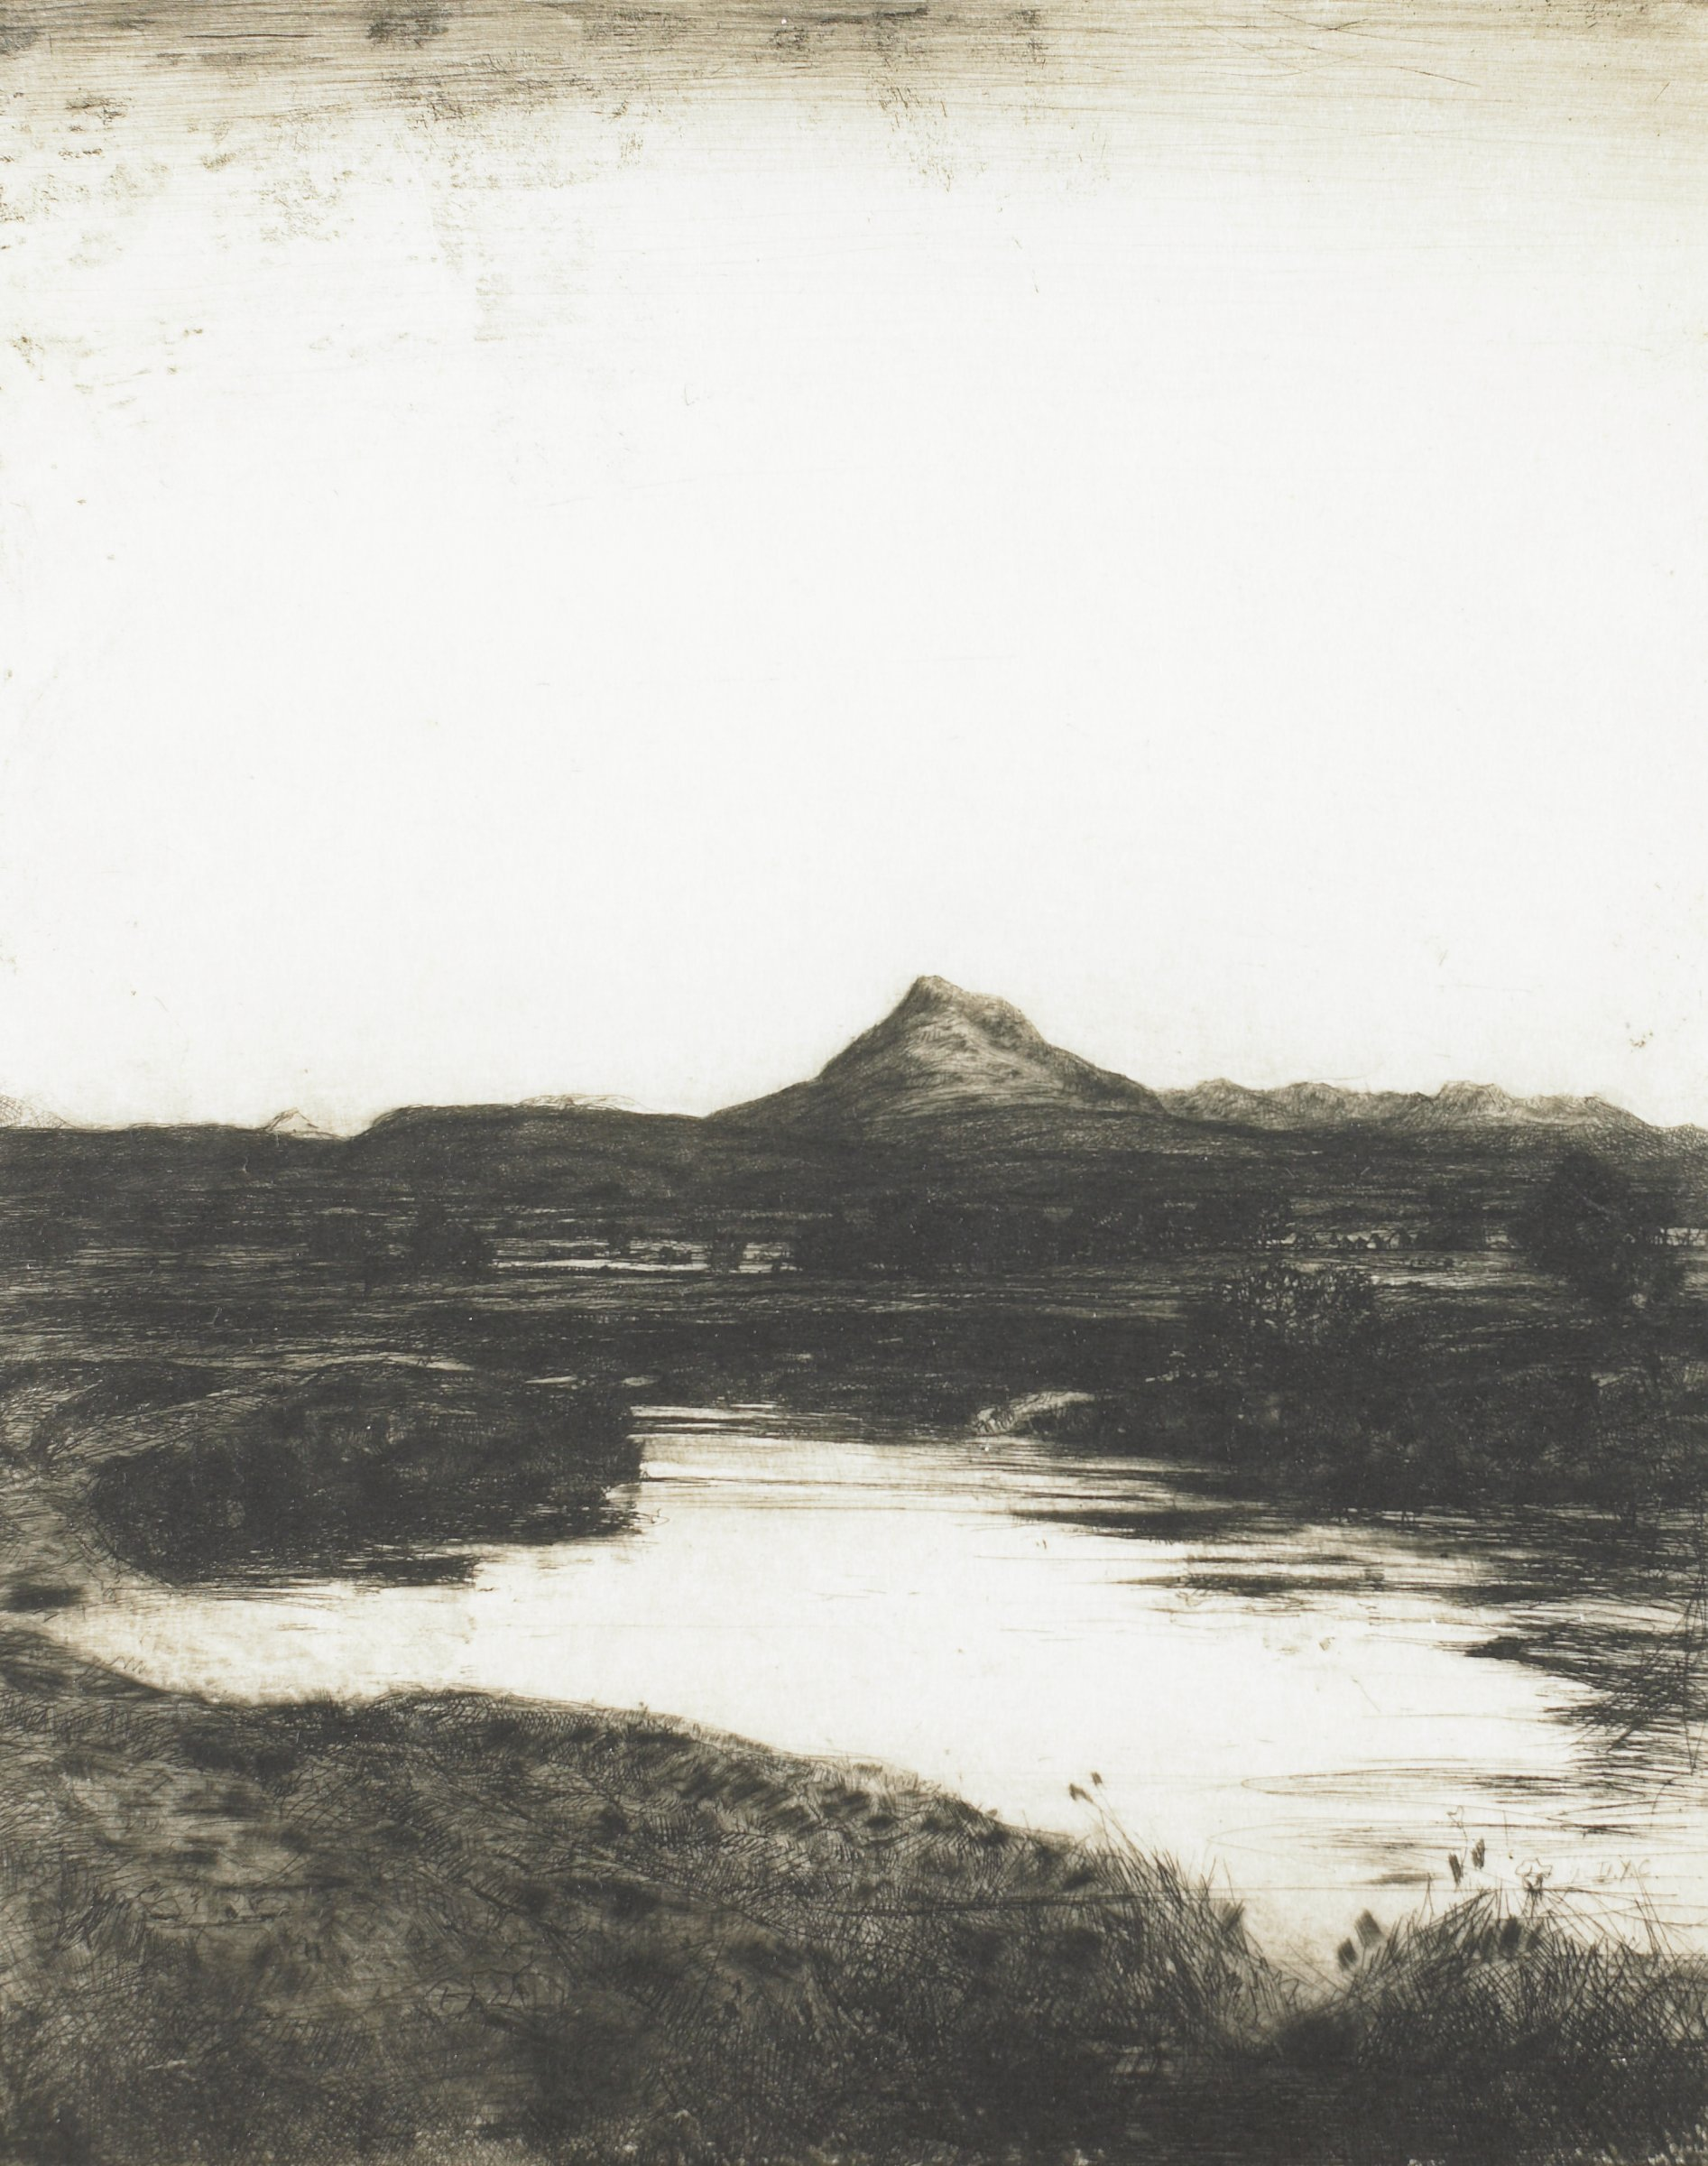 A broad landscape scene is depicted. The foreground is primarily flat with groves of trees scattered throughout the landscape, and the background is poulated with mountains.